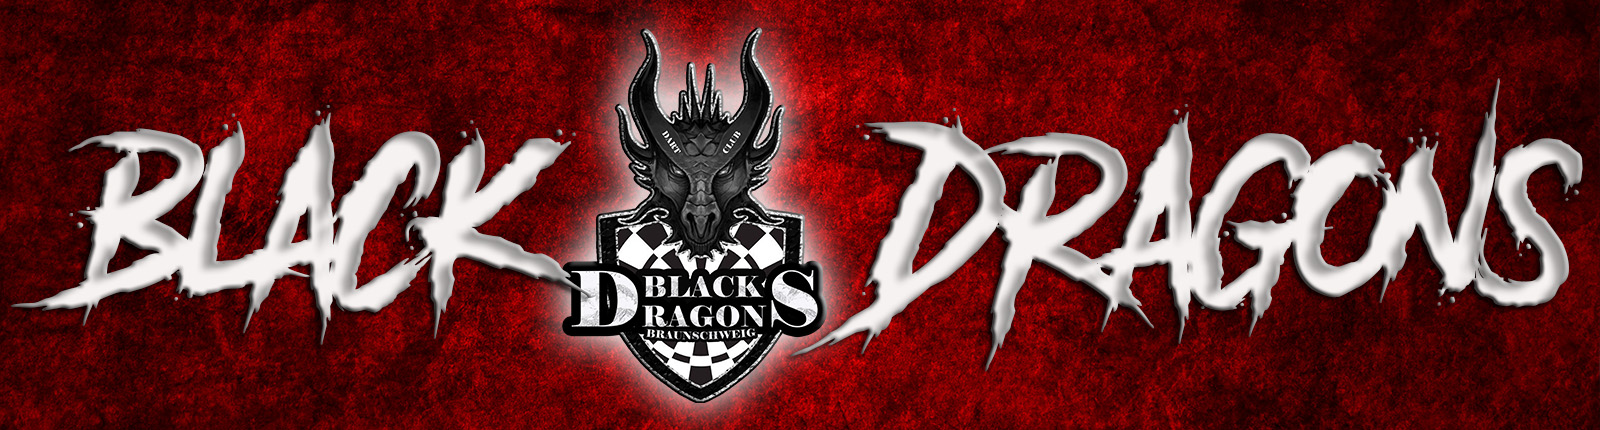 DC Black Dragons BS